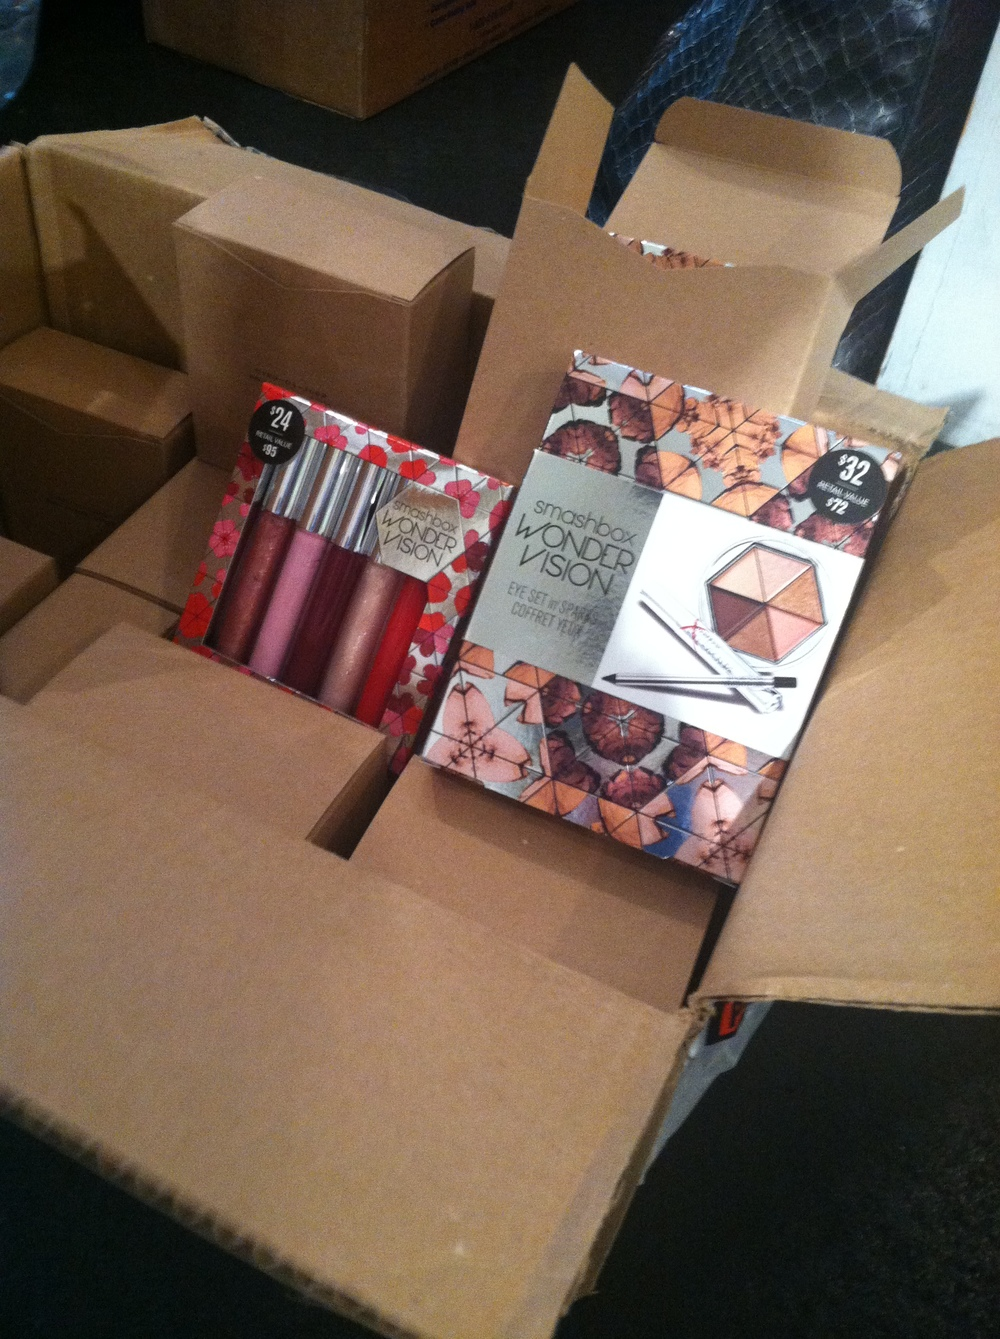 Buzz Salon, Iowa City, Iowa and their Smashbox Holiday Gift Boxes. Quite a deal.